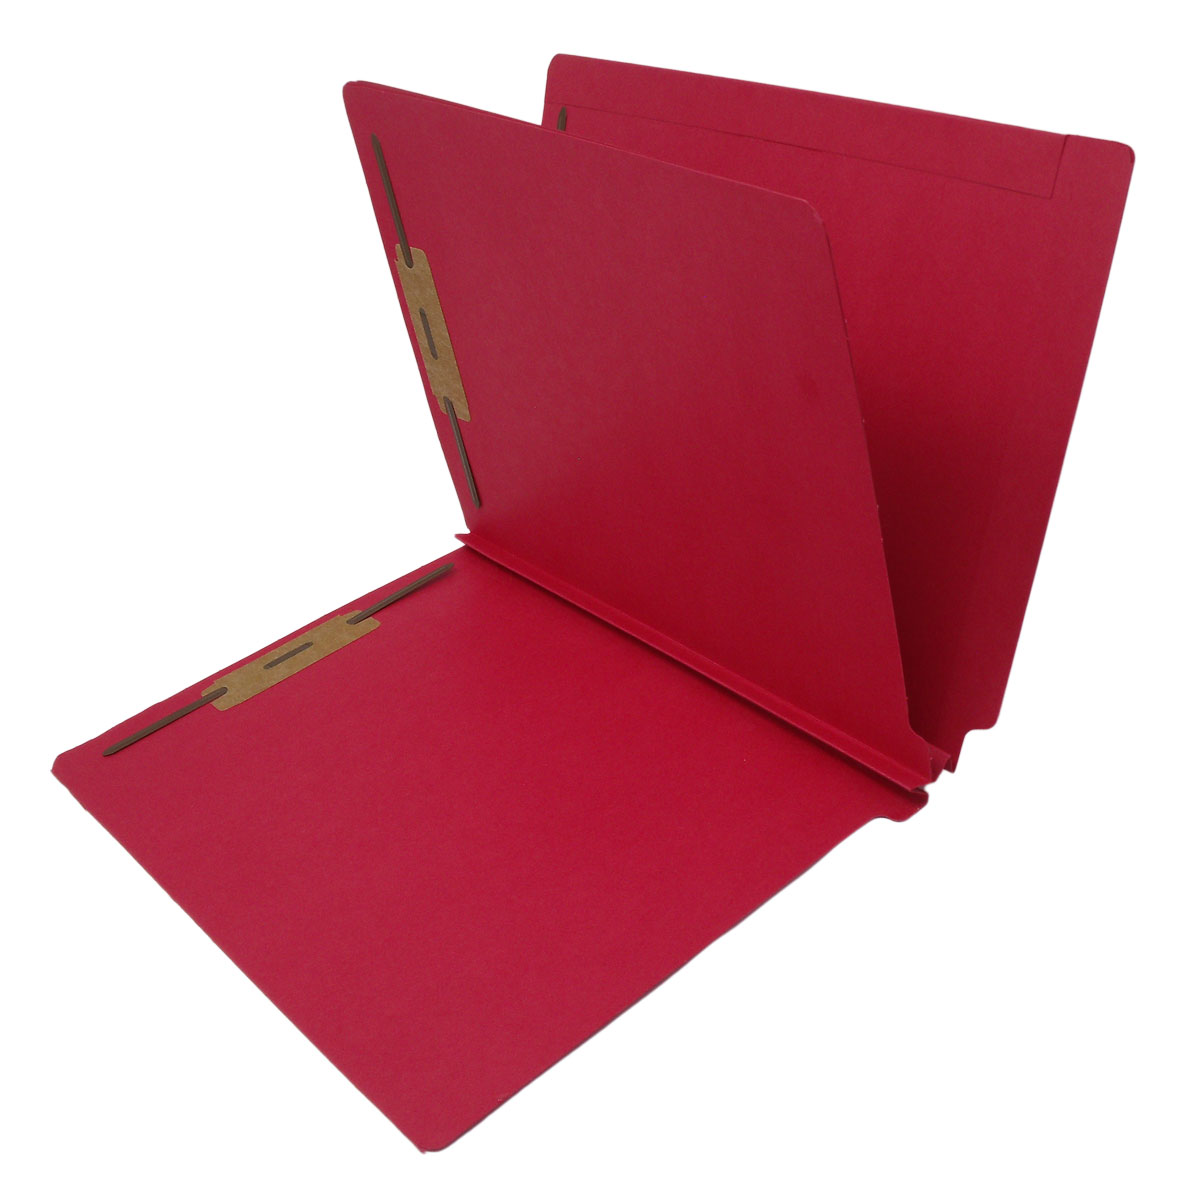 S-9239-RED - 14 Pt. Red Classification Folders, Full Cut End Tab, Letter Size, 1 Divider (Box of 25)